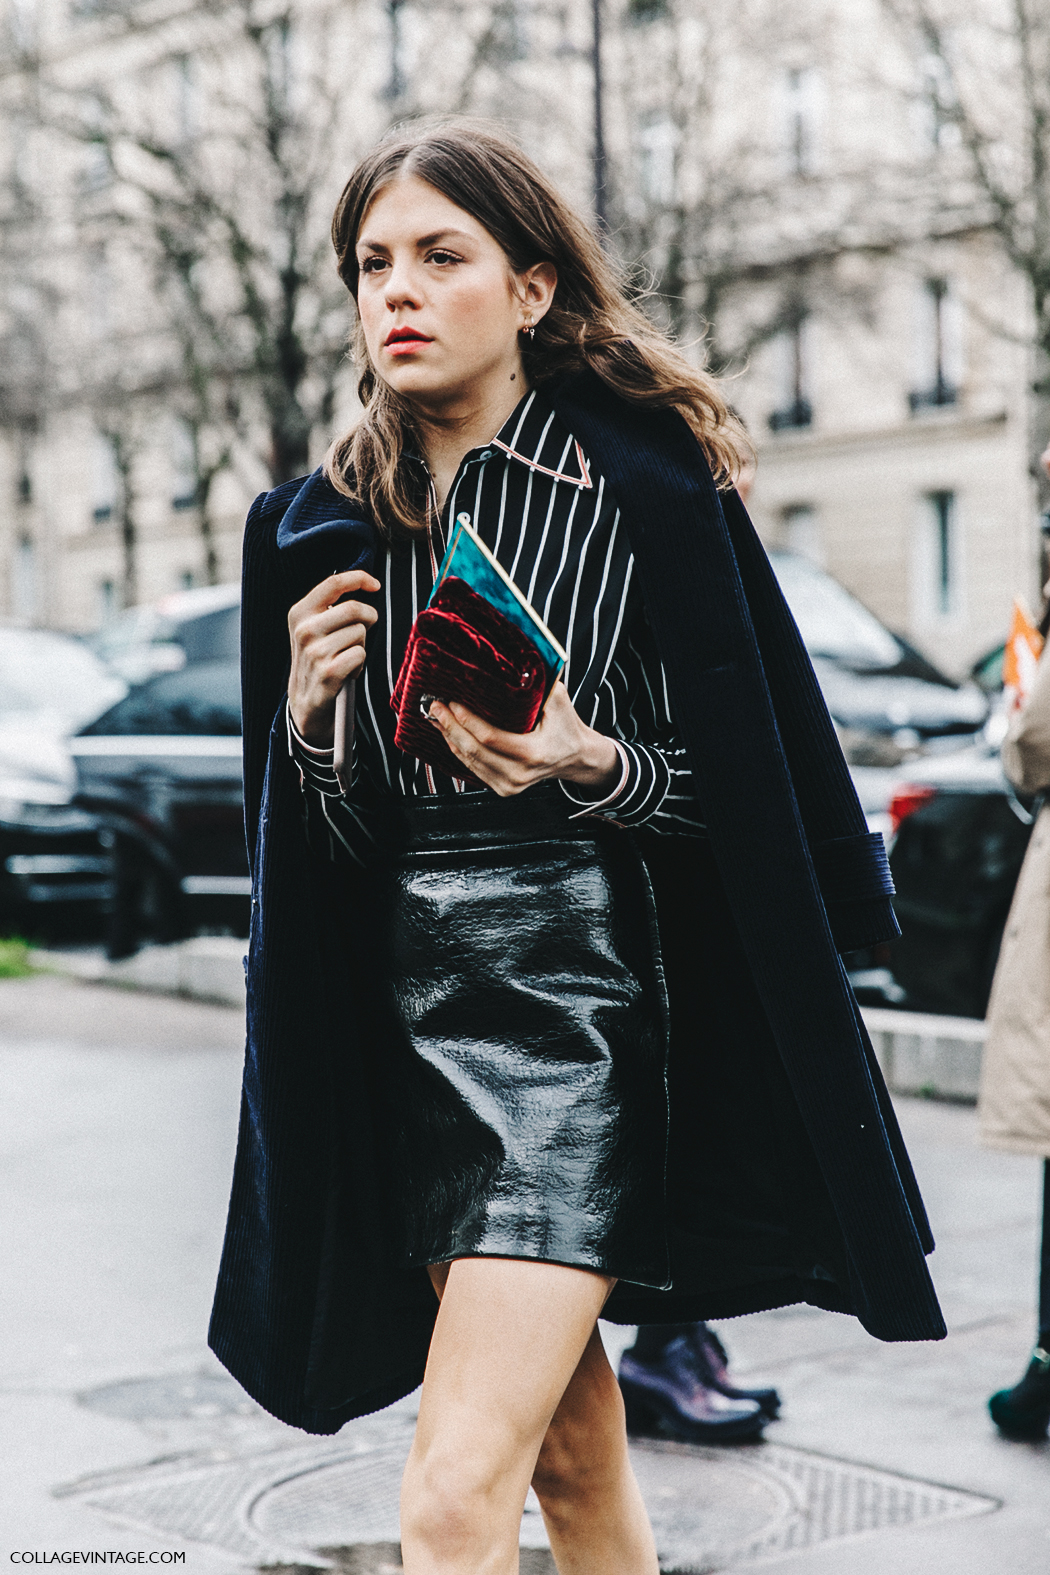 PFW-Paris_Fashion_Week_Fall_2016-Street_Style-Collage_Vintage-Miu_Miu-STRIPED_SHIRT-Velvet_boots-